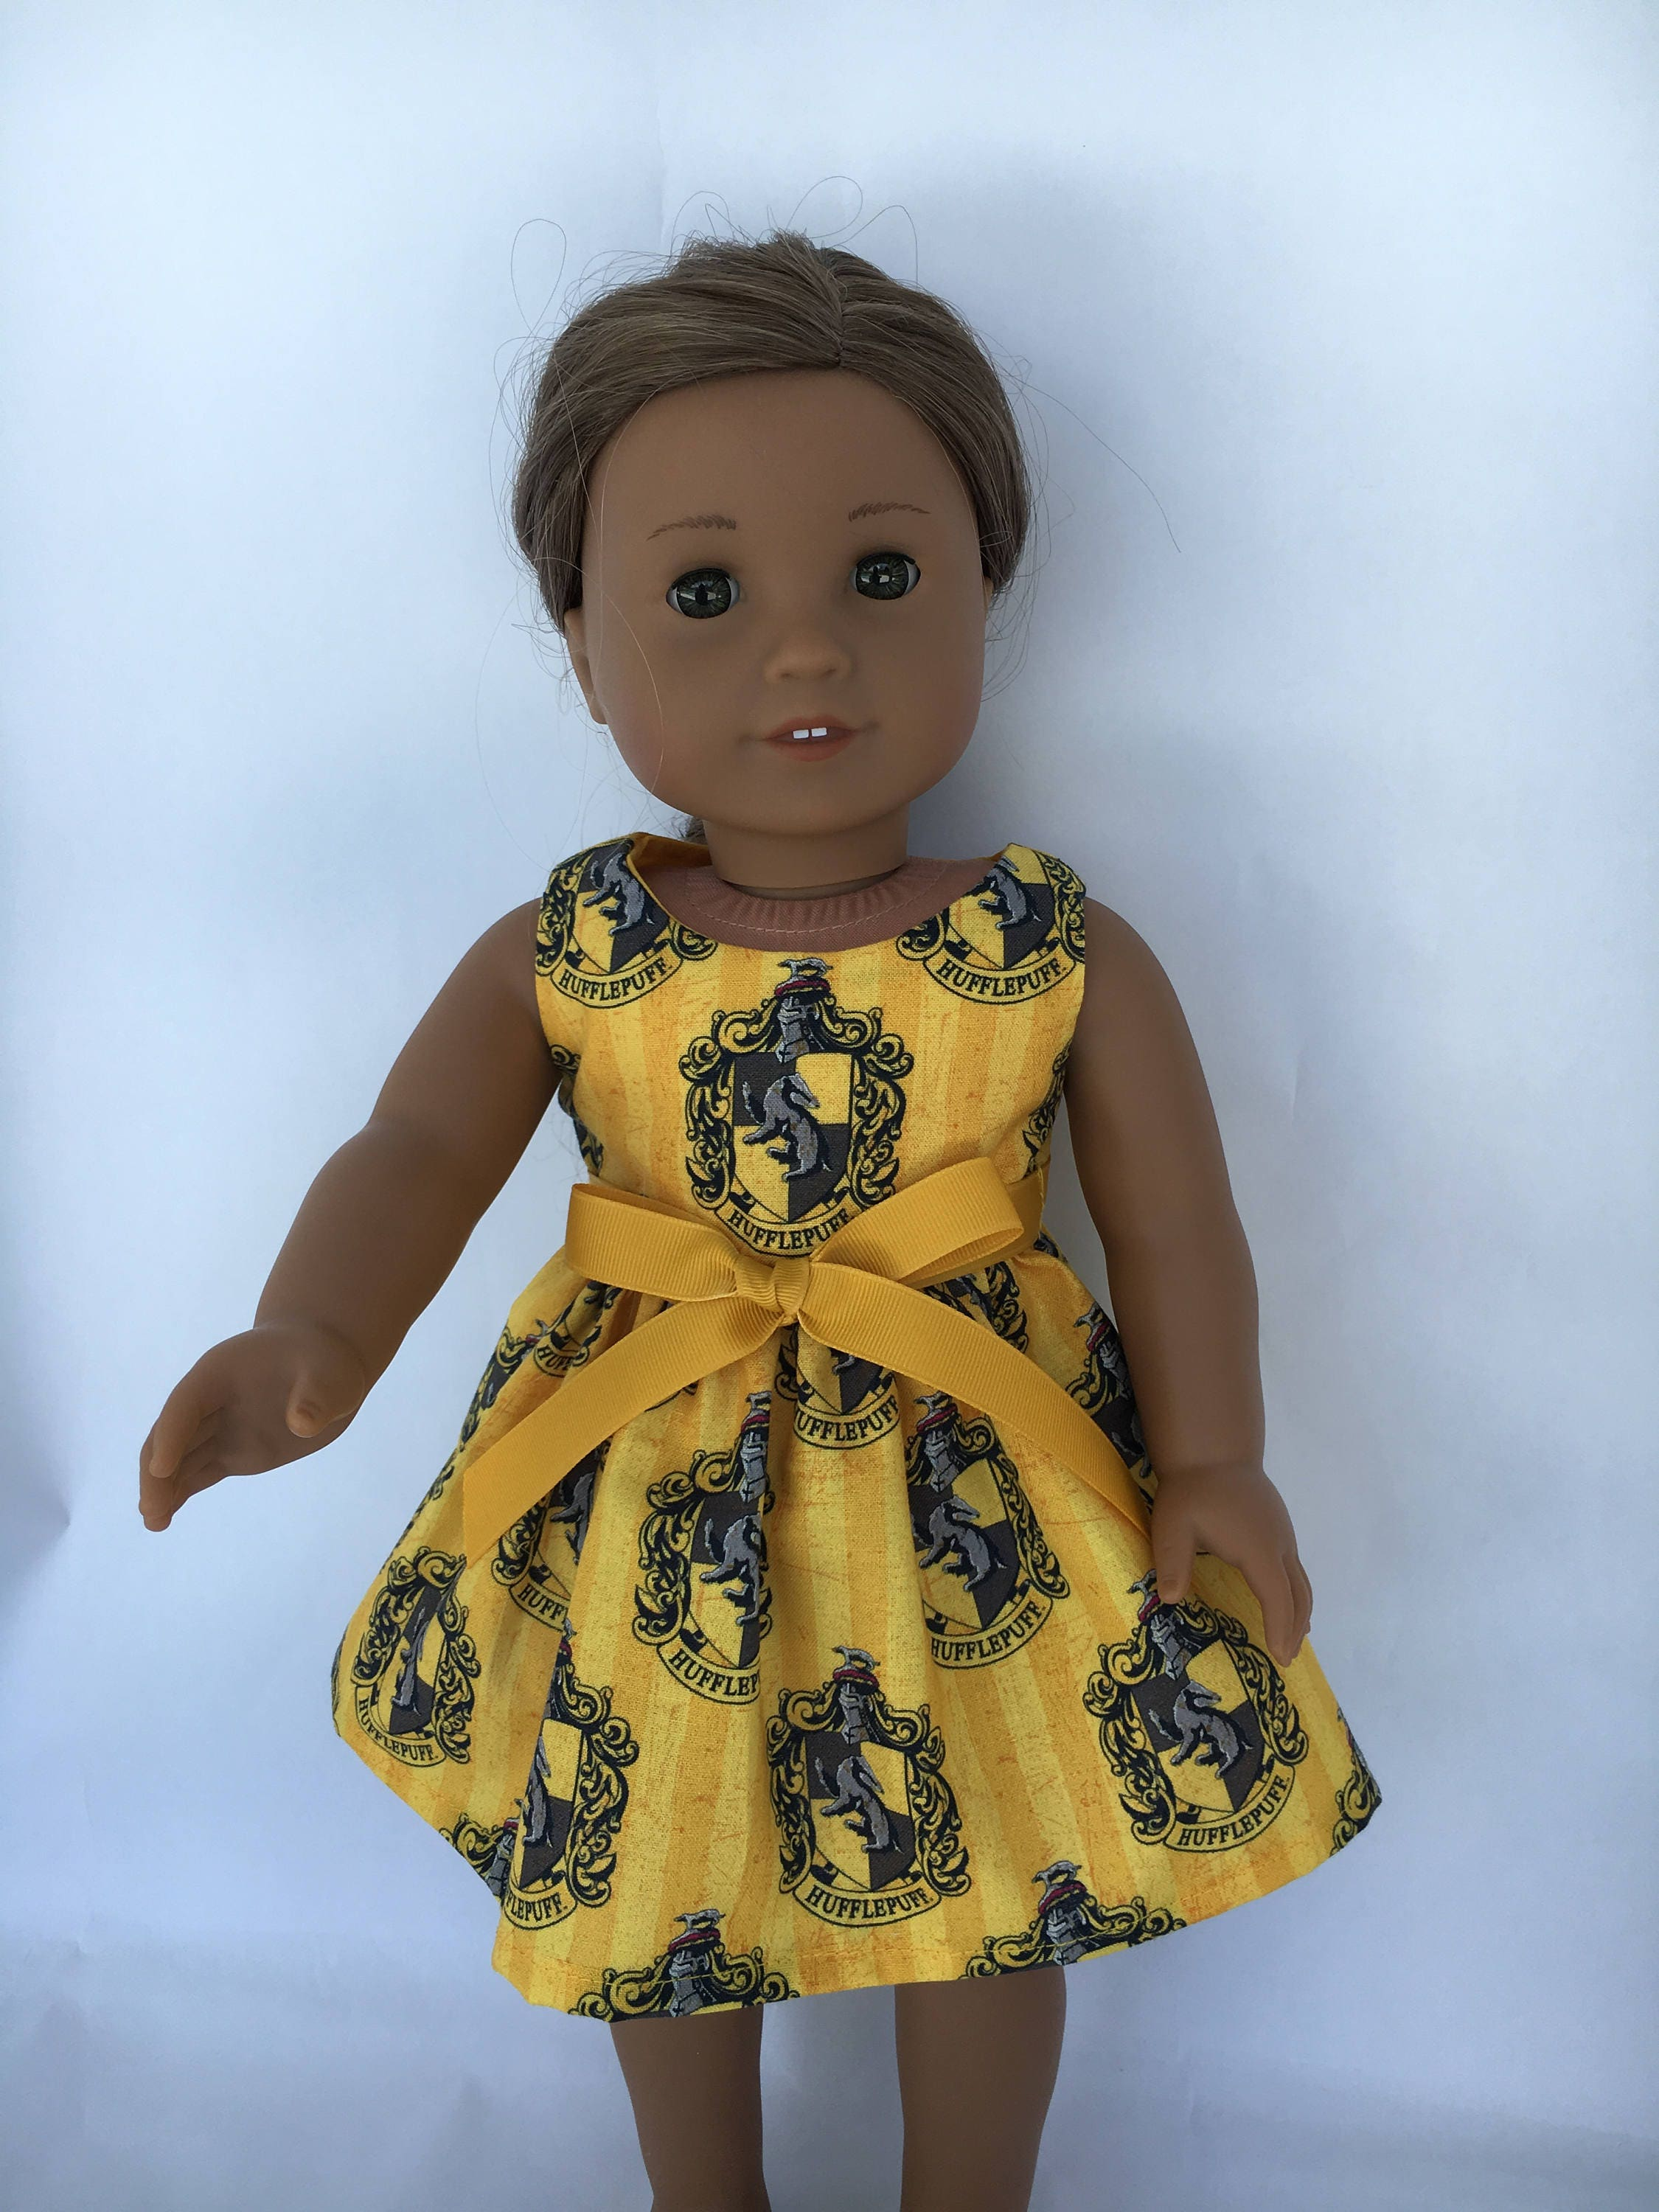 cf8ce5faf5 18 inch doll dress made of Harry Potter Hufflepuff fabric | Etsy